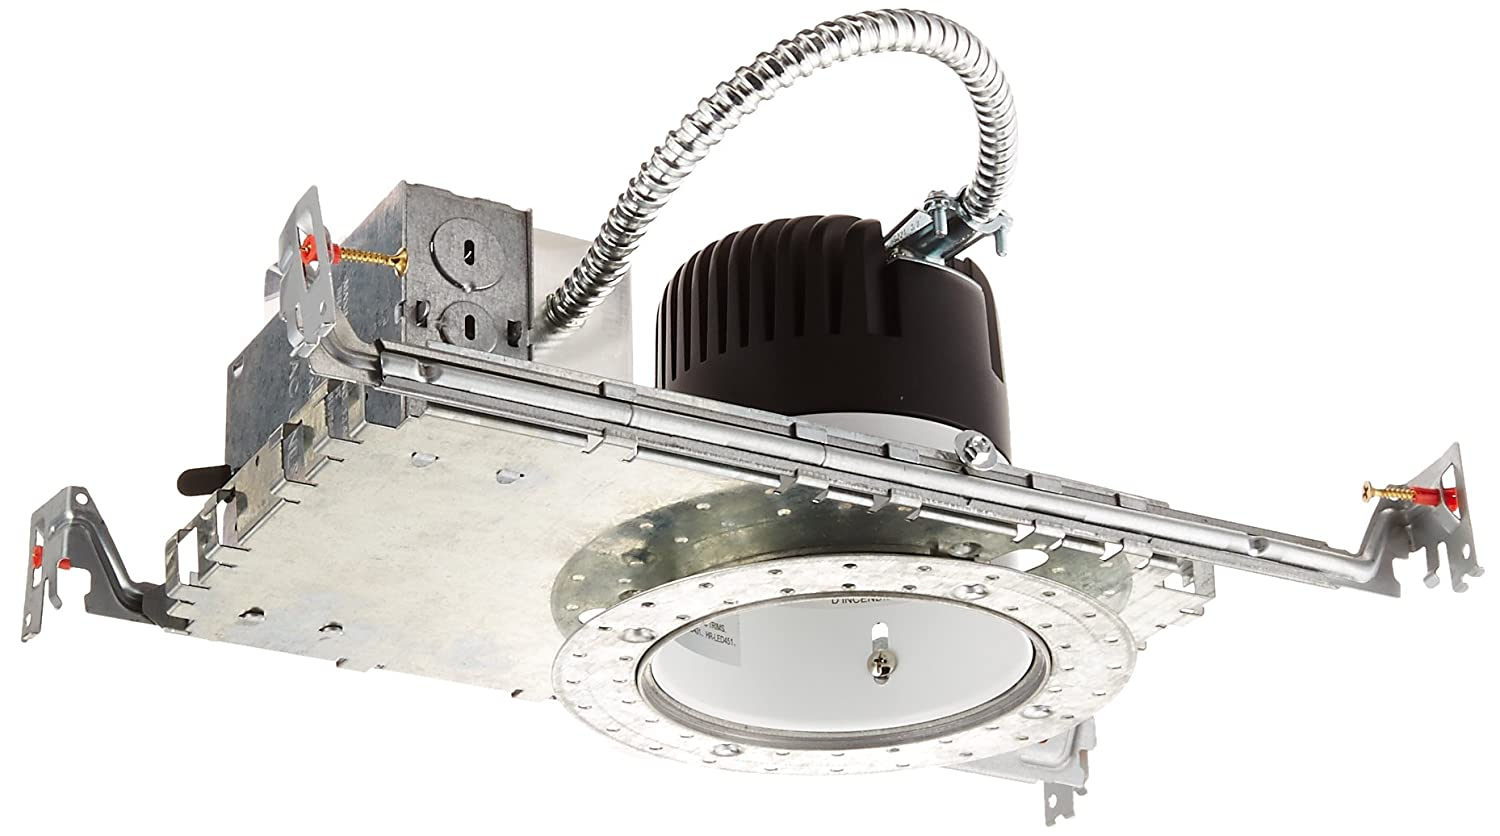 Wac lighting hr hl 4 low voltage new construction housing recessed can light - Wac Lighting Hr Led418 Nic Row Ledme 4 Inch Recessed Downlight New Construction Invisible Trim Ic Rated Housing 3000k Recessed Light Fixture